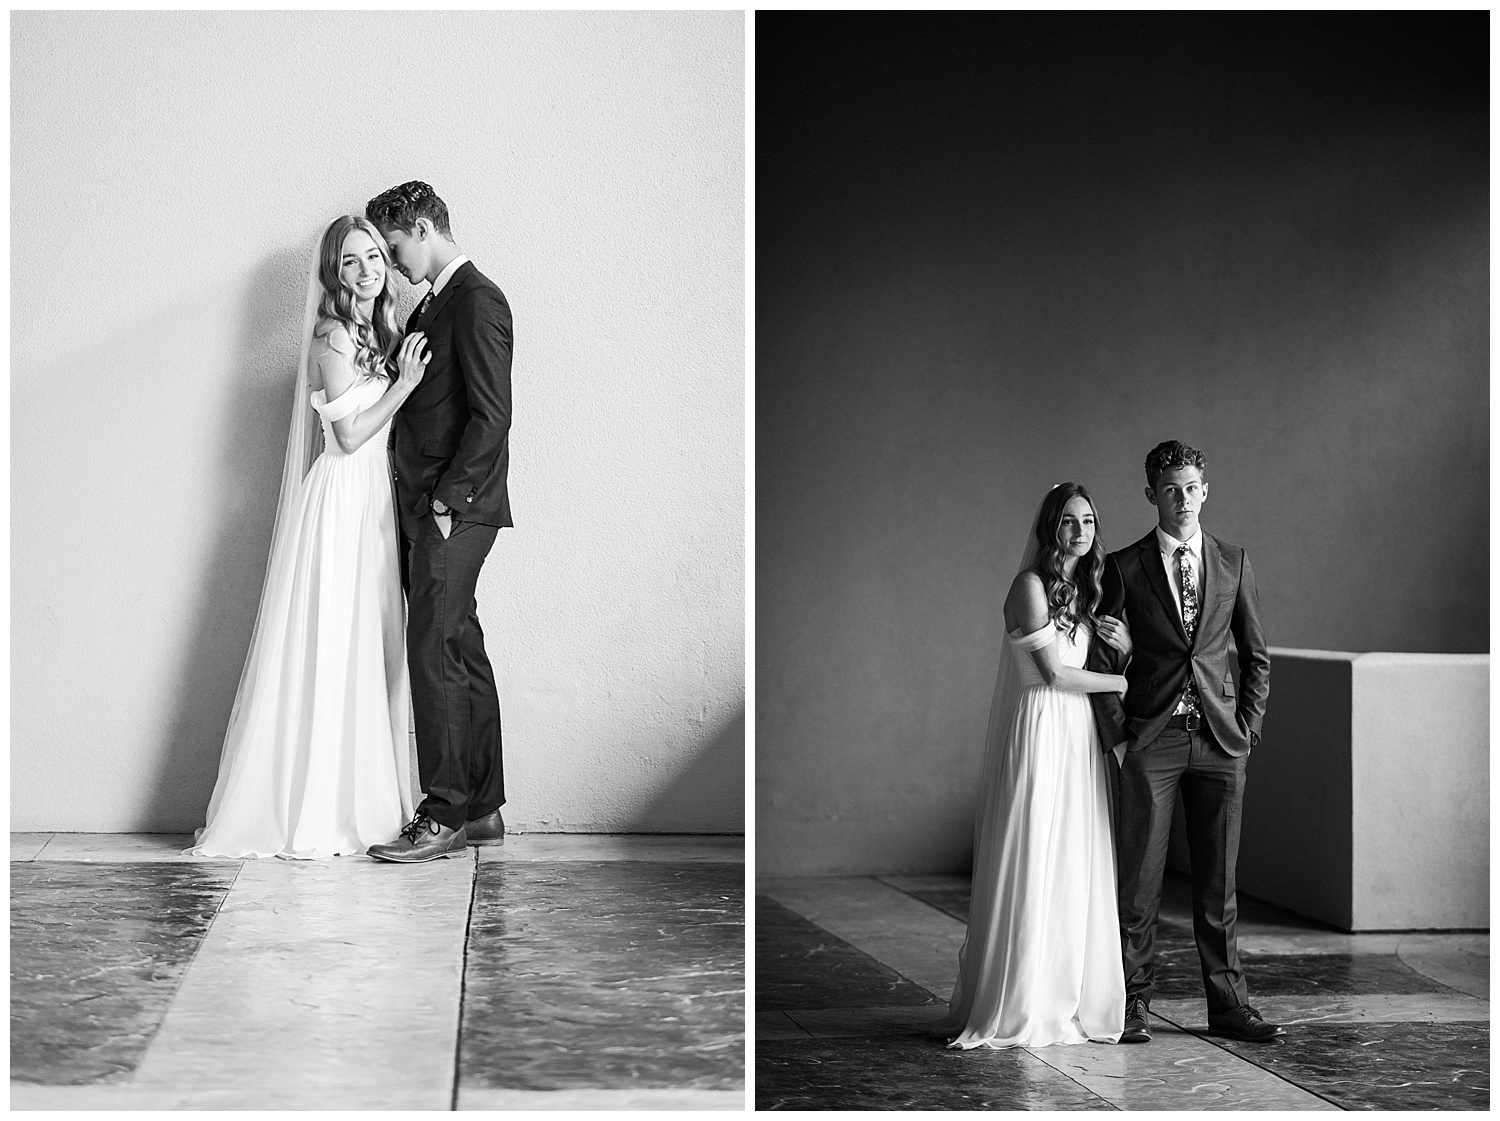 cate-batchelor-black-white-bride-groom-portraits.jpg